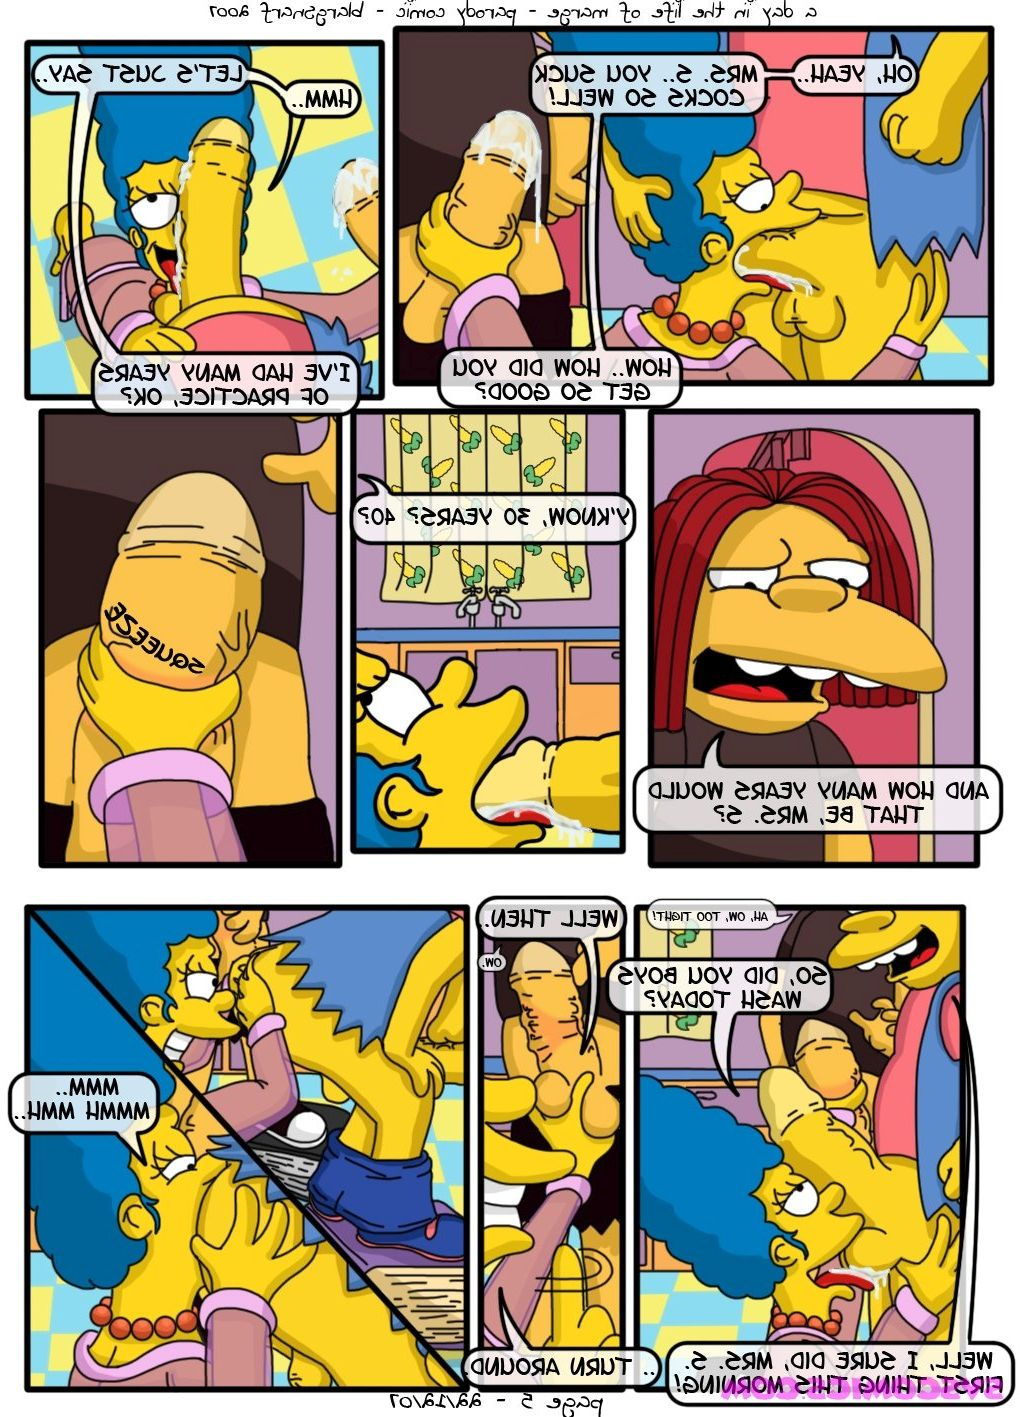 day-life-marge-simpsons image_9560.jpg